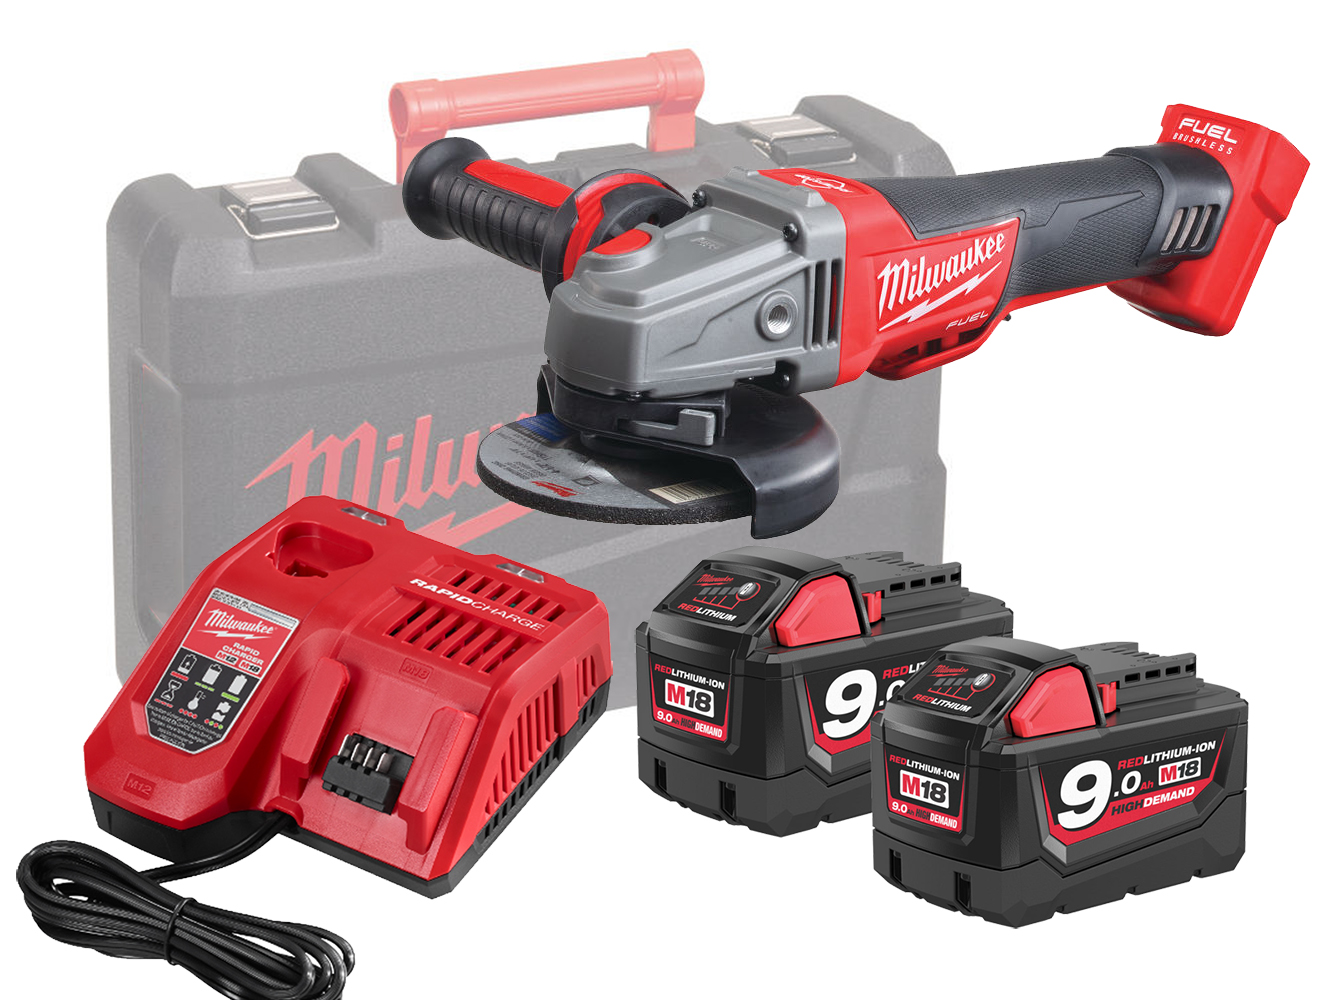 Milwaukee M18CAG115XPDB 18V Fuel 115mm Breaking Grinder With Paddle Switch - 9.0Ah Pack